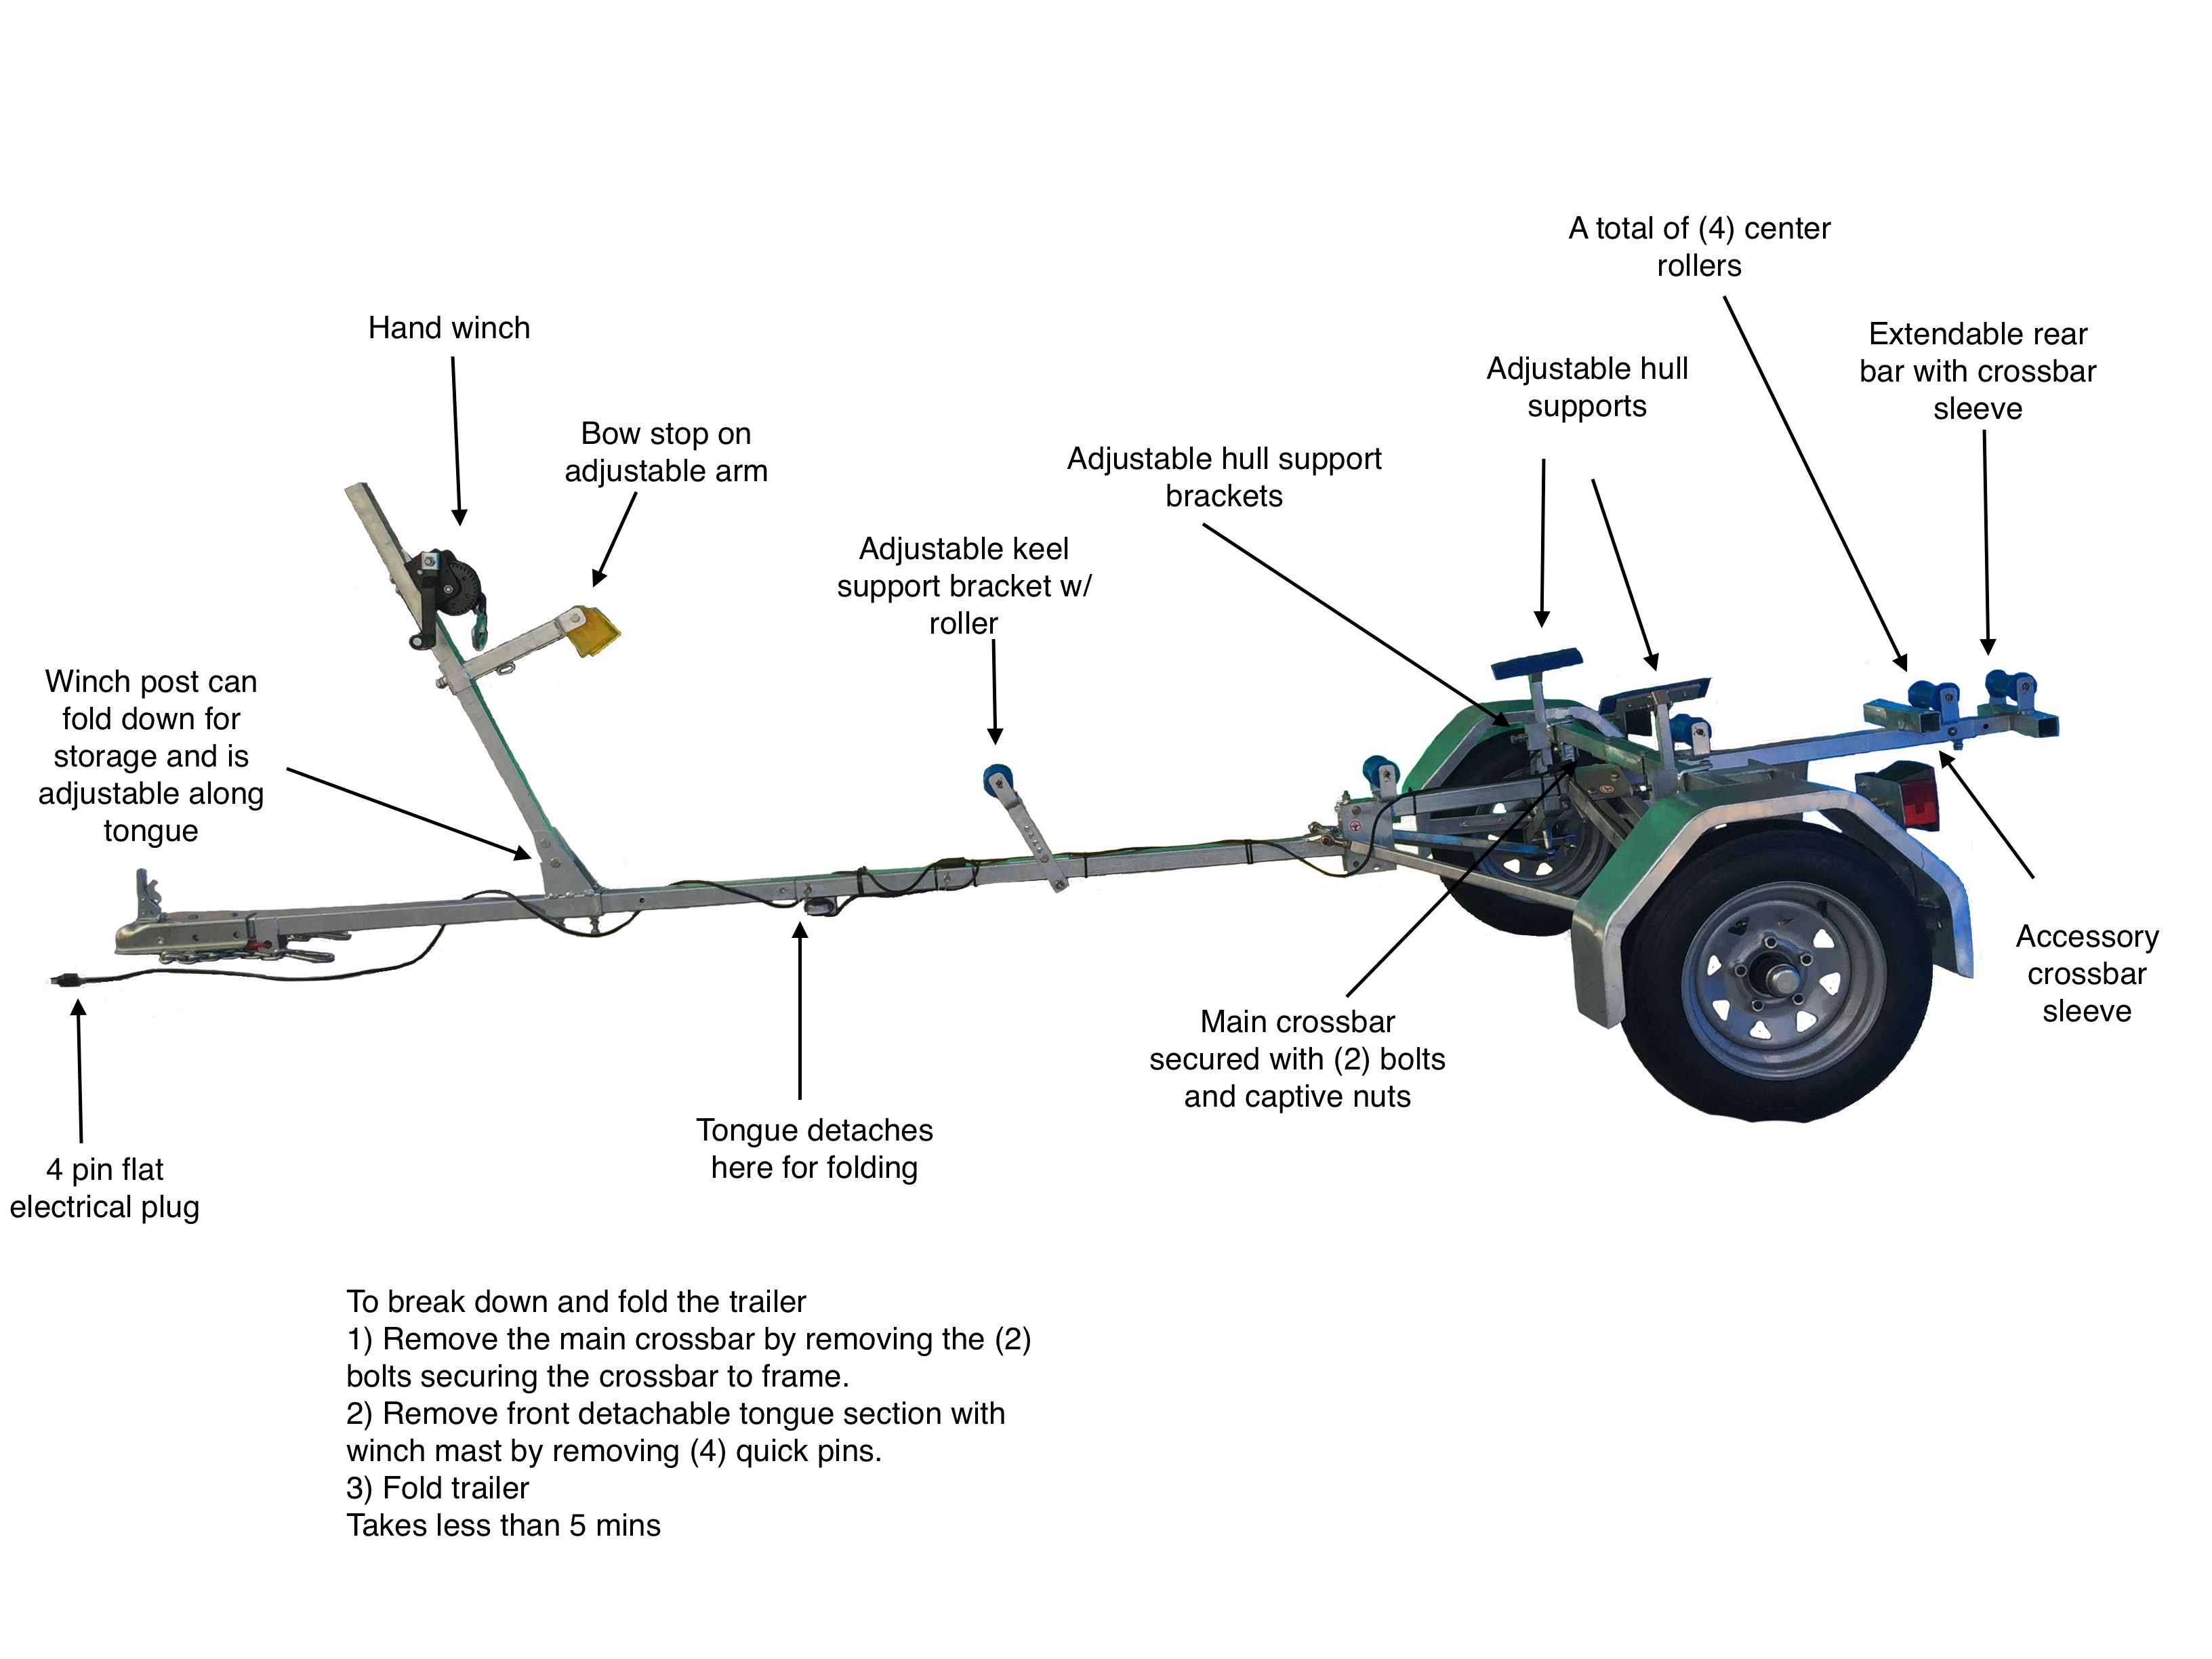 boat trailer winch wiring diagram | wiring diagram boat winch wiring diagram warn winch wiring diagram 2 solenoid wiring diagram